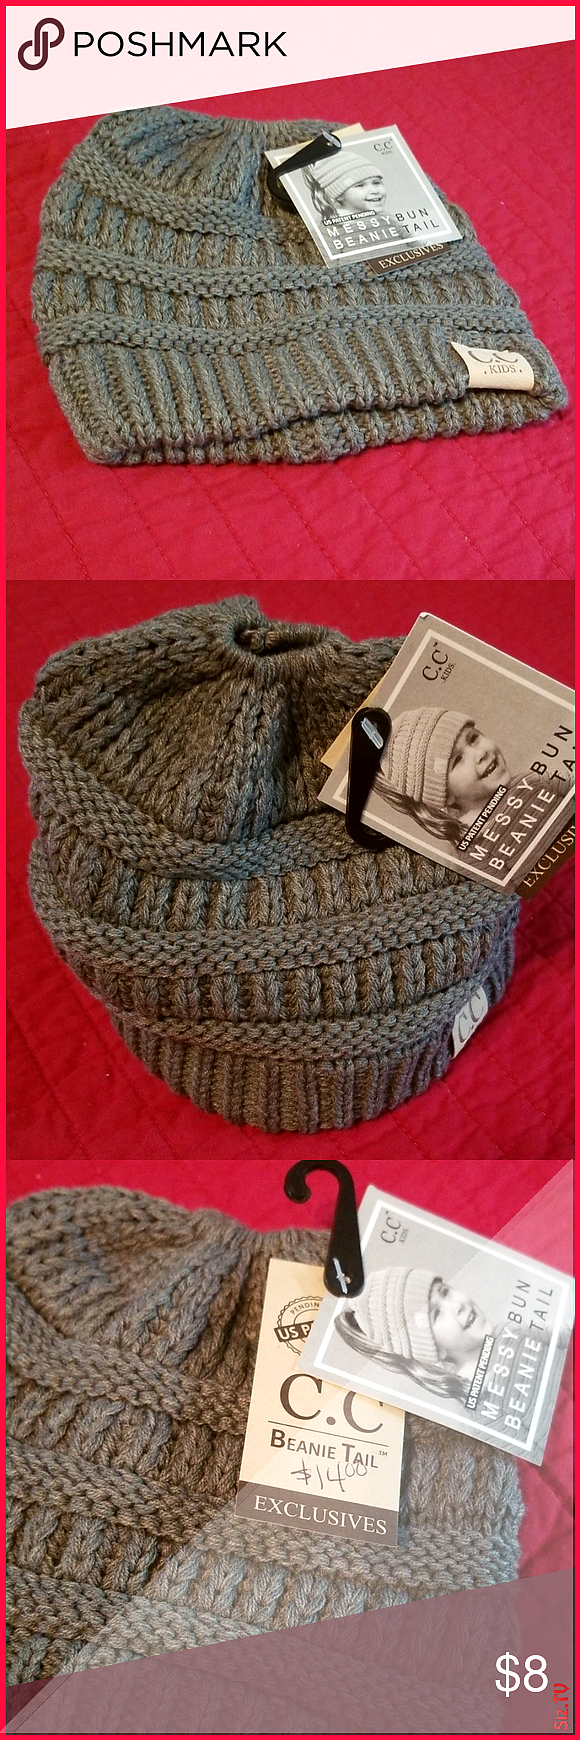 Messy Bun hat C C kids messy bun hat NWT gray fits toddler C C kids Accessories Hats kidsmessyhats Messy Bun hat C C kids messy bun hat NWT gr  Messy Bun hat C C kids messy bun hat NWT gray fits toddler C C kids Accessories Hats kidsmessyhats Messy Bun hat nbsp  hellip   #accessories #kidsmessyhats #messy #messybunhatcrochettoddler #kidsmessyhats